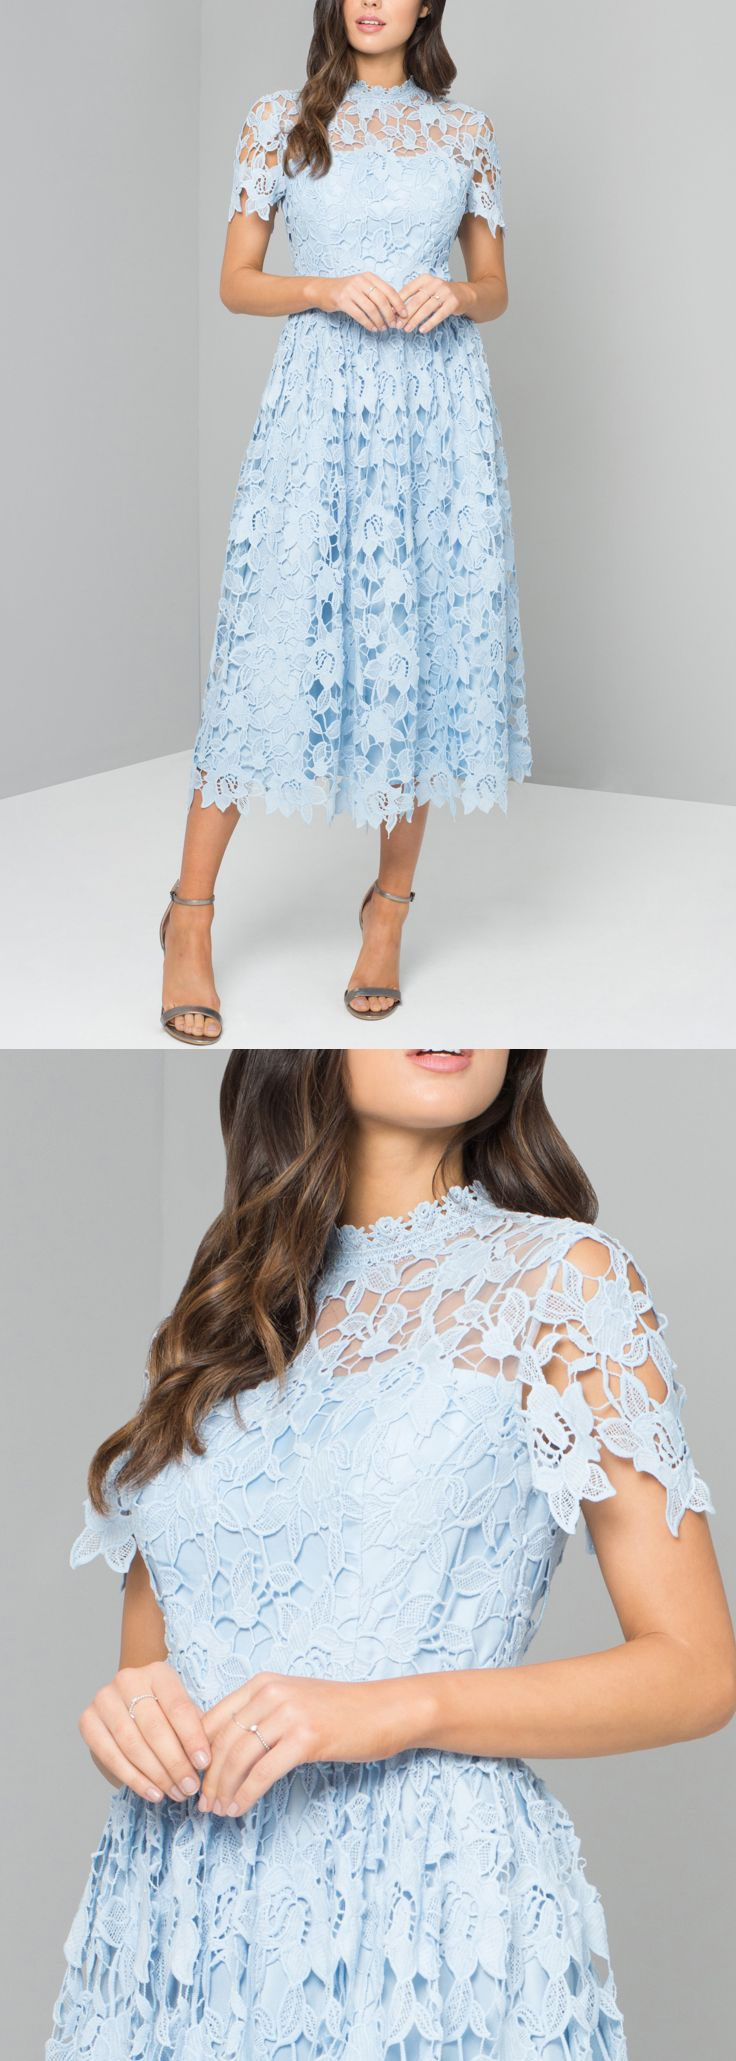 Baby blue long lace dress for a day at the races royal ascot epsom